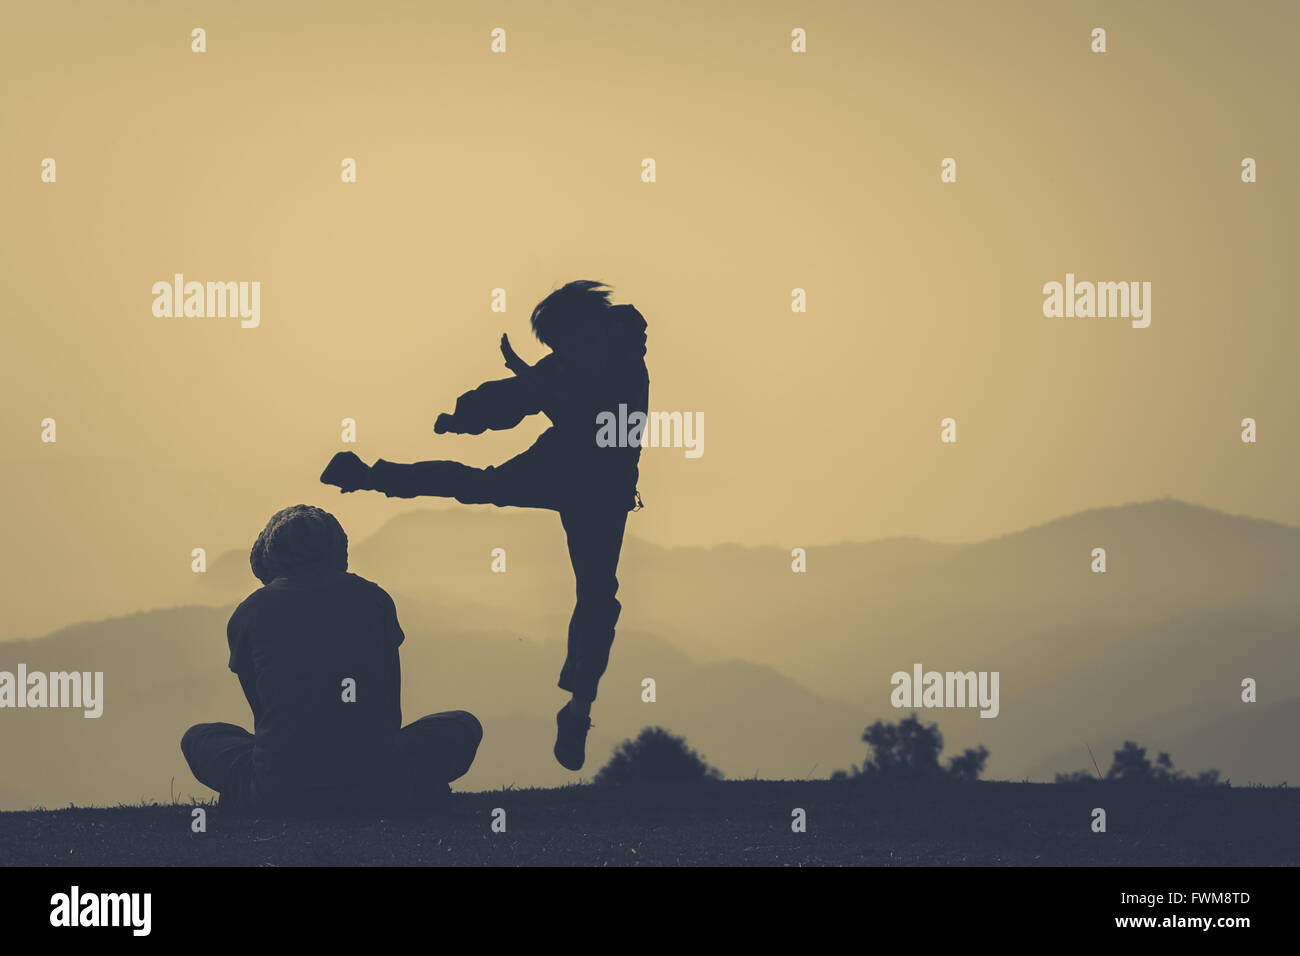 Silhouette Person Exercising By Friend On Field - Stock Image